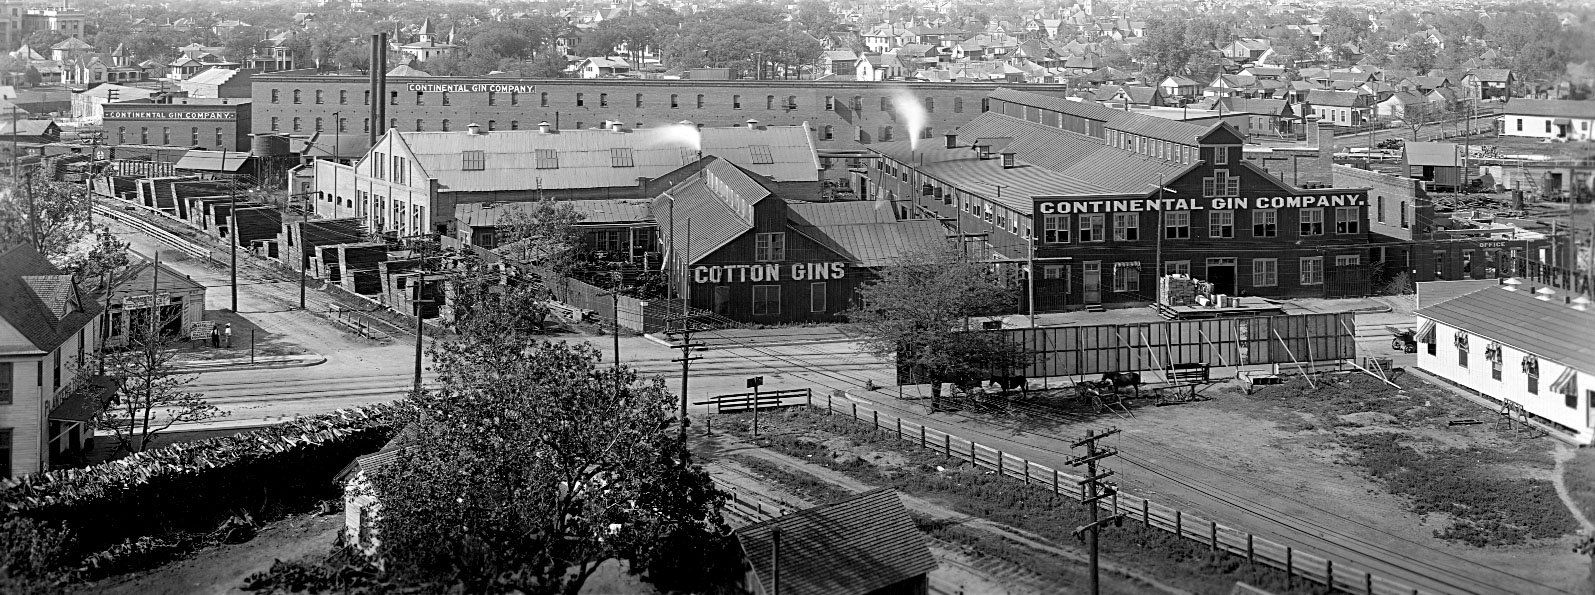 The Continental Gin Co. on Dallas' Elm Street in about 1908.